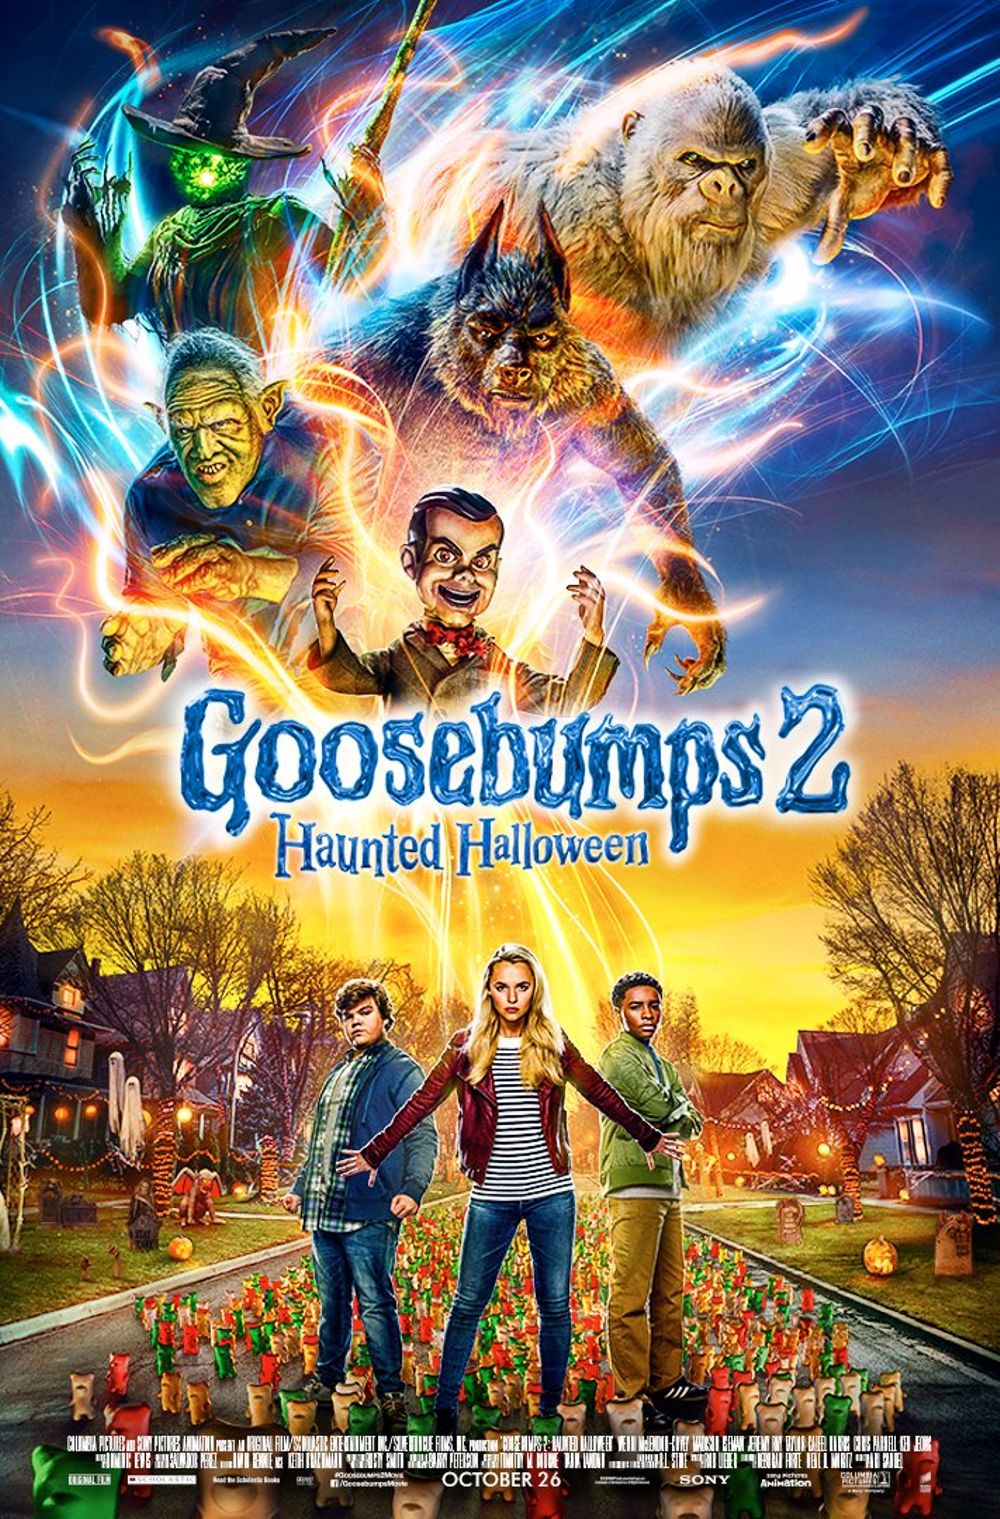 Goosebumps 2: Haunted Halloween Movie Review